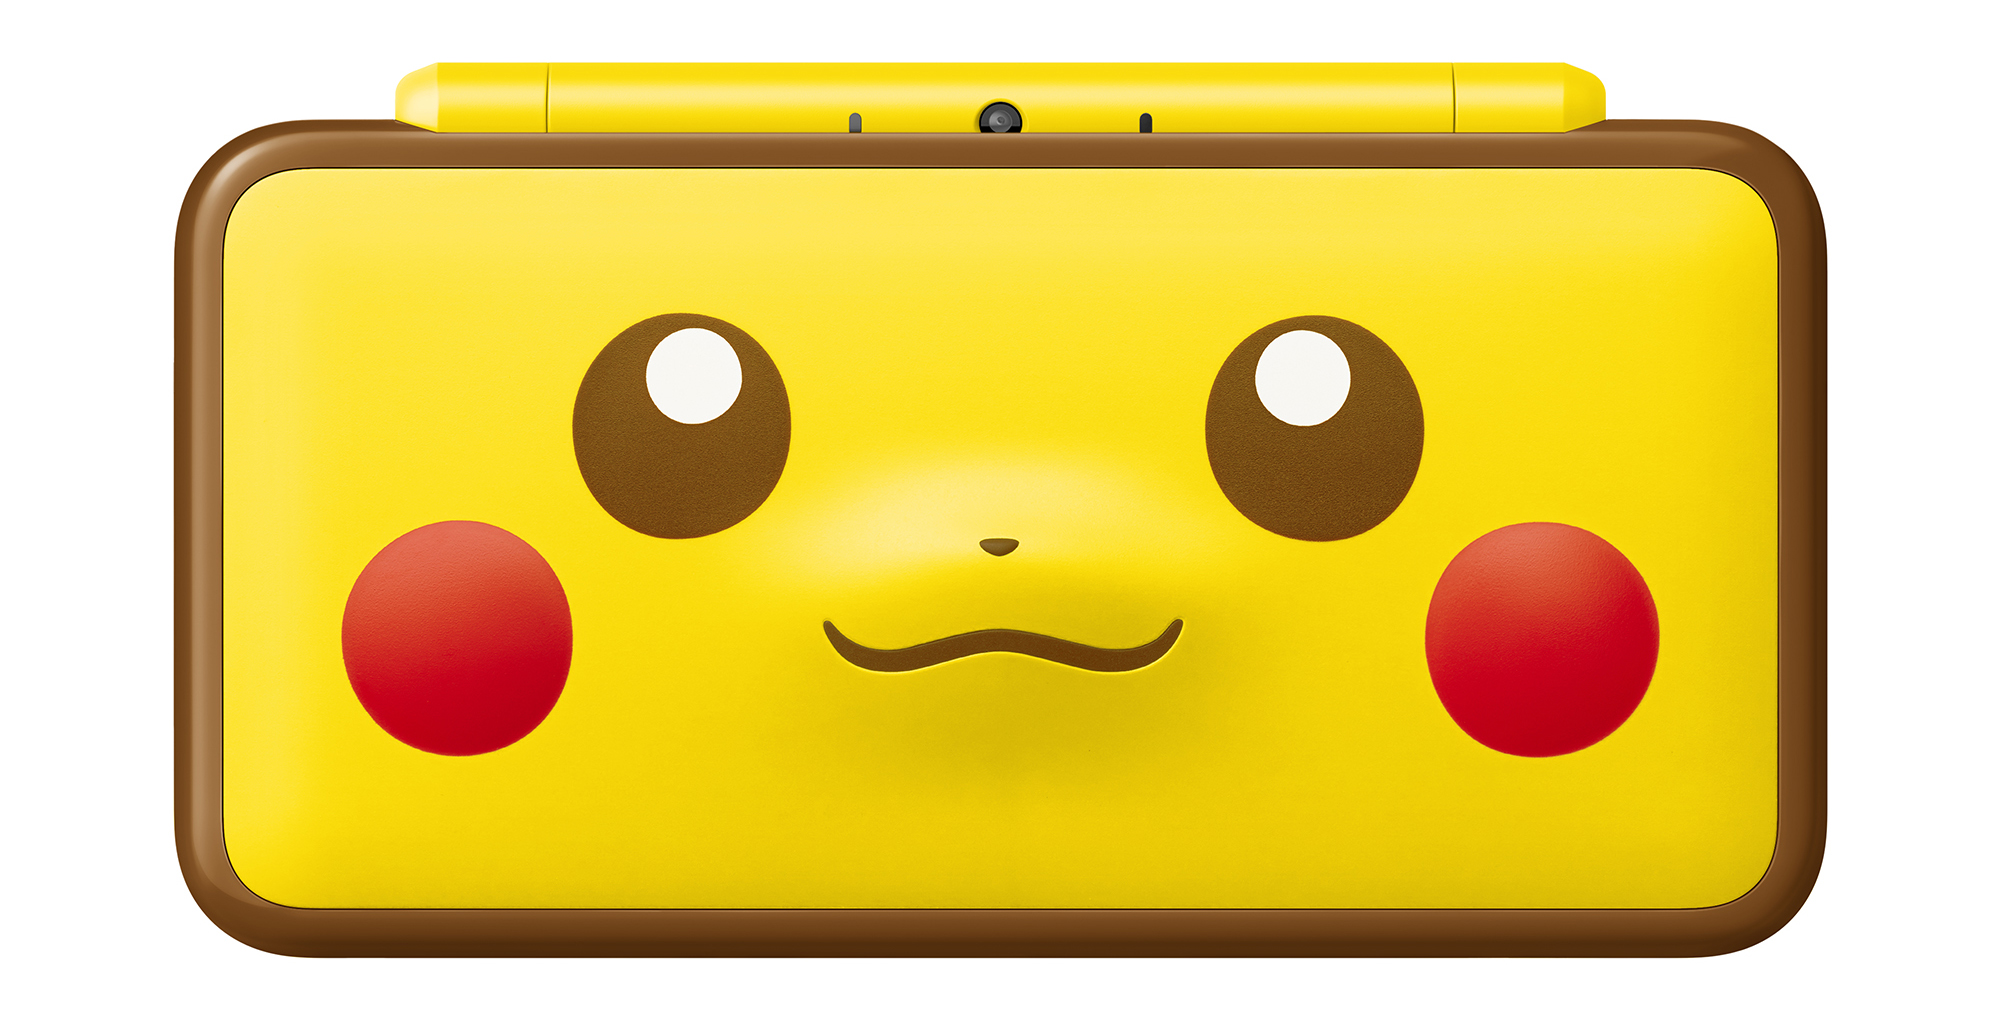 New 2DS XL Pikachu Edition launches January 26 in North America